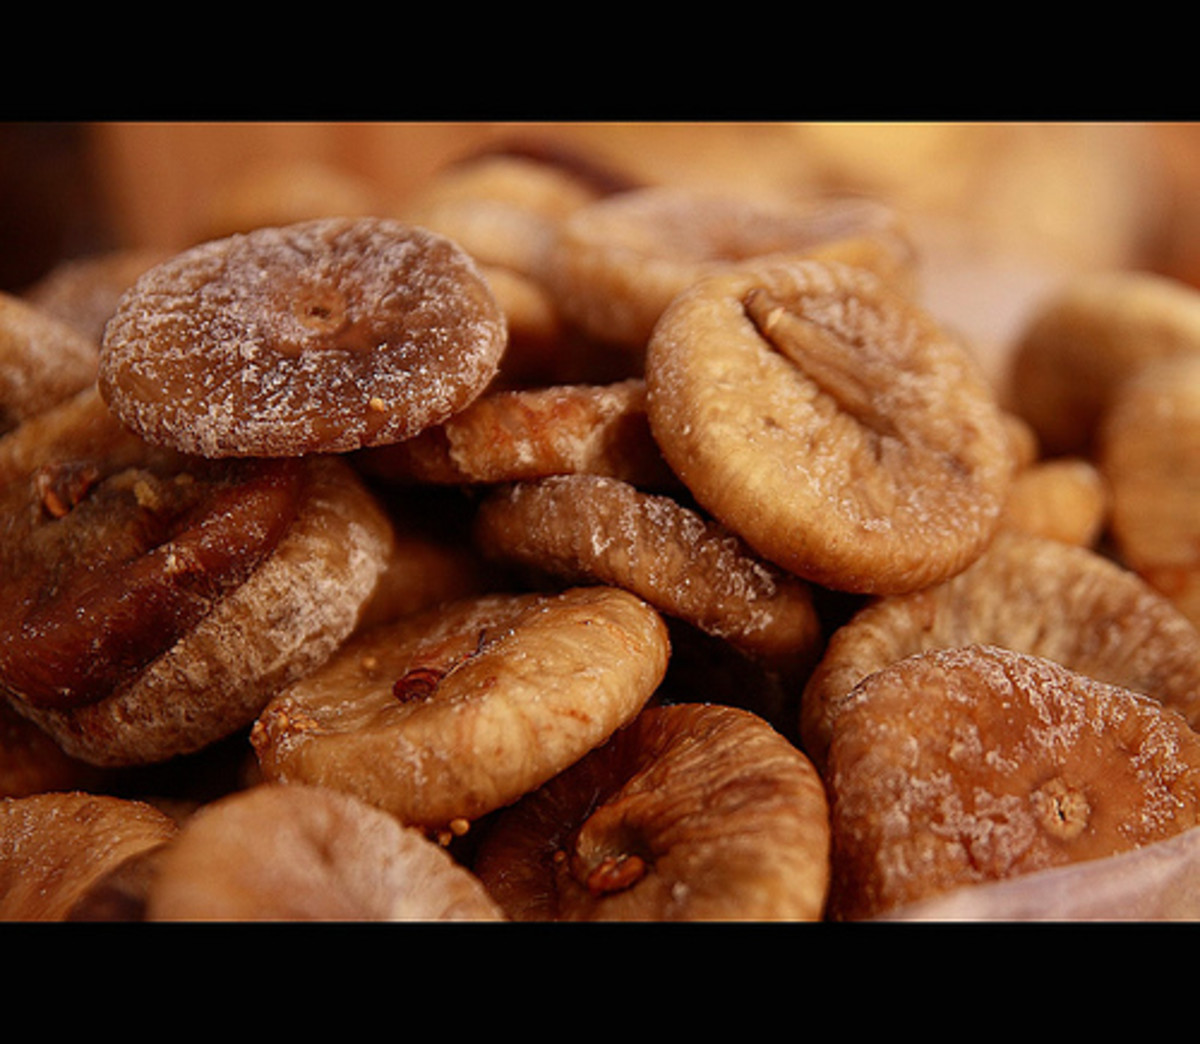 Dried figs photo: Fr Antunes @flickr